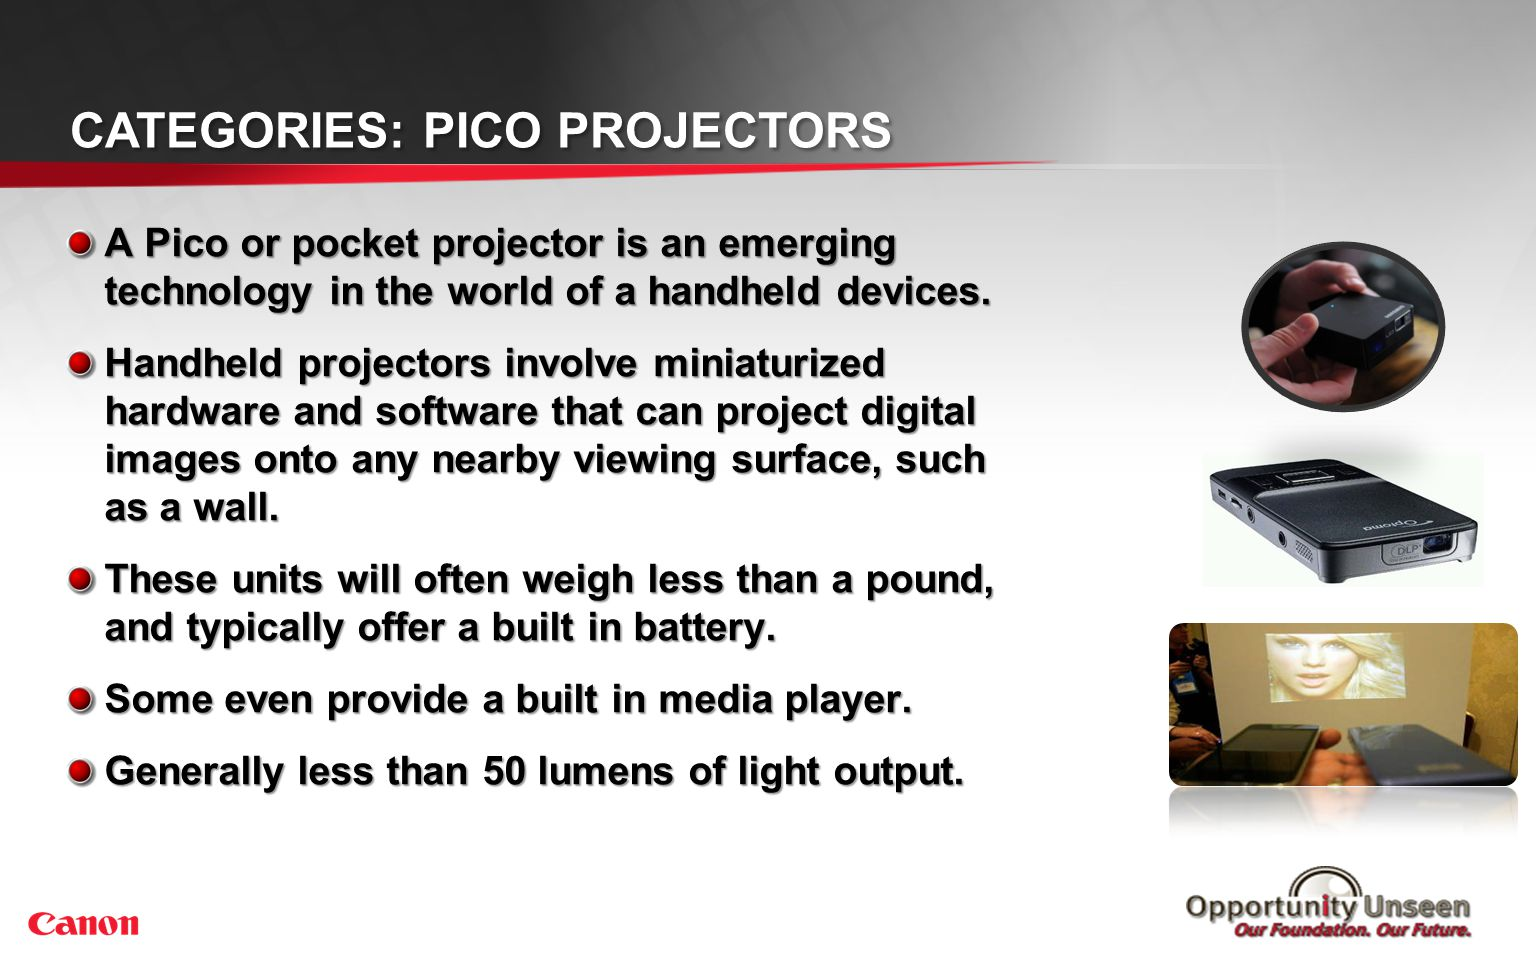 CATEGORIES: PICO PROJECTORS A Pico or pocket projector is an emerging technology in the world of a handheld devices. Handheld projectors involve minia